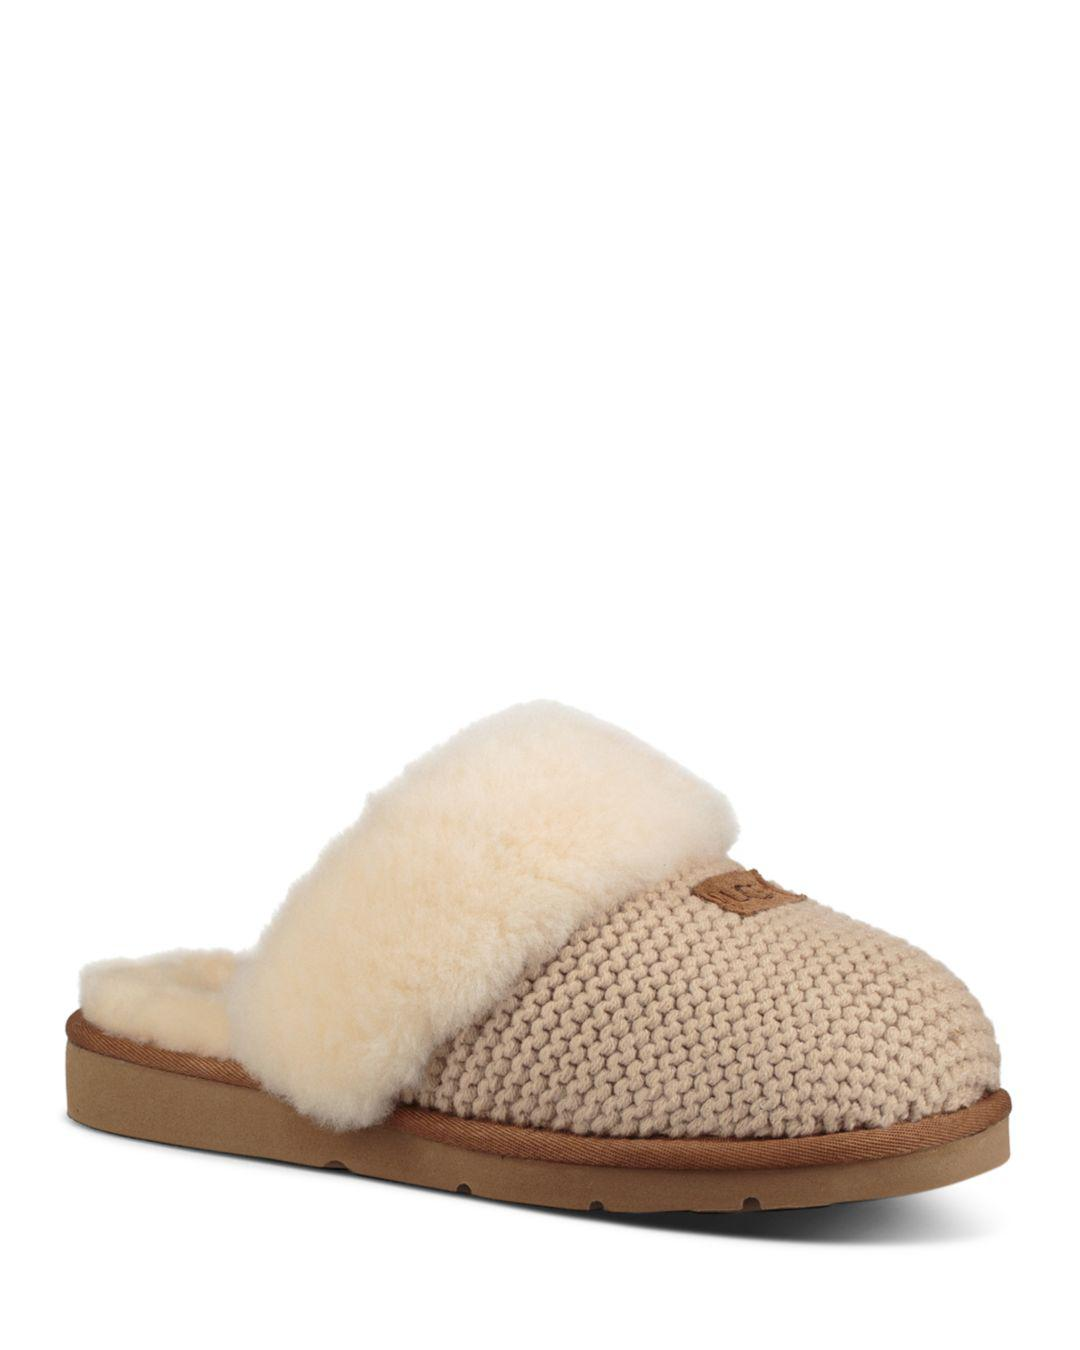 Lyst - Ugg Women s Cozy Knit Slippers in Natural 7526de368